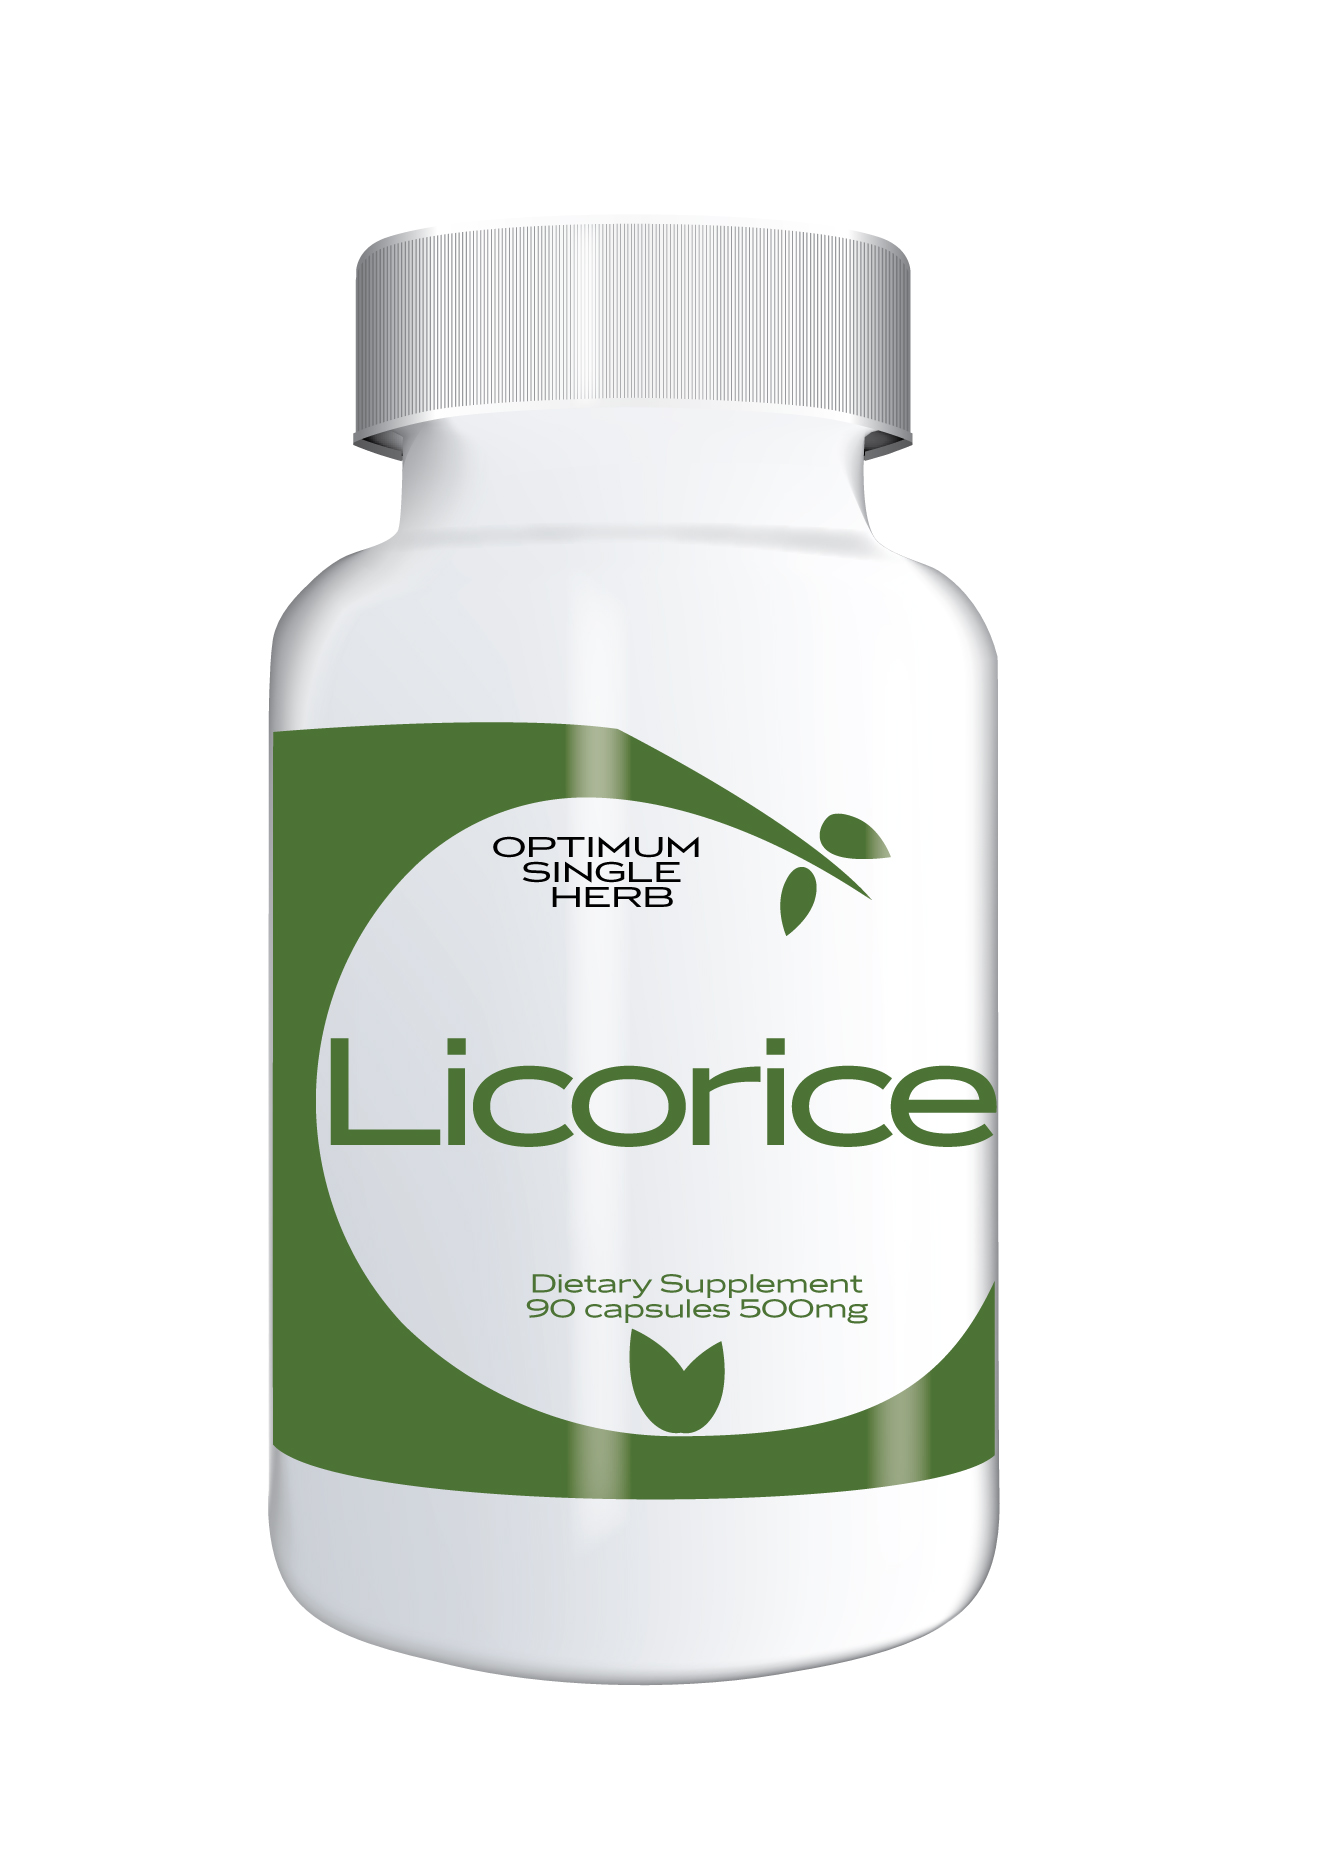 Licorice 90 capsules 500mg